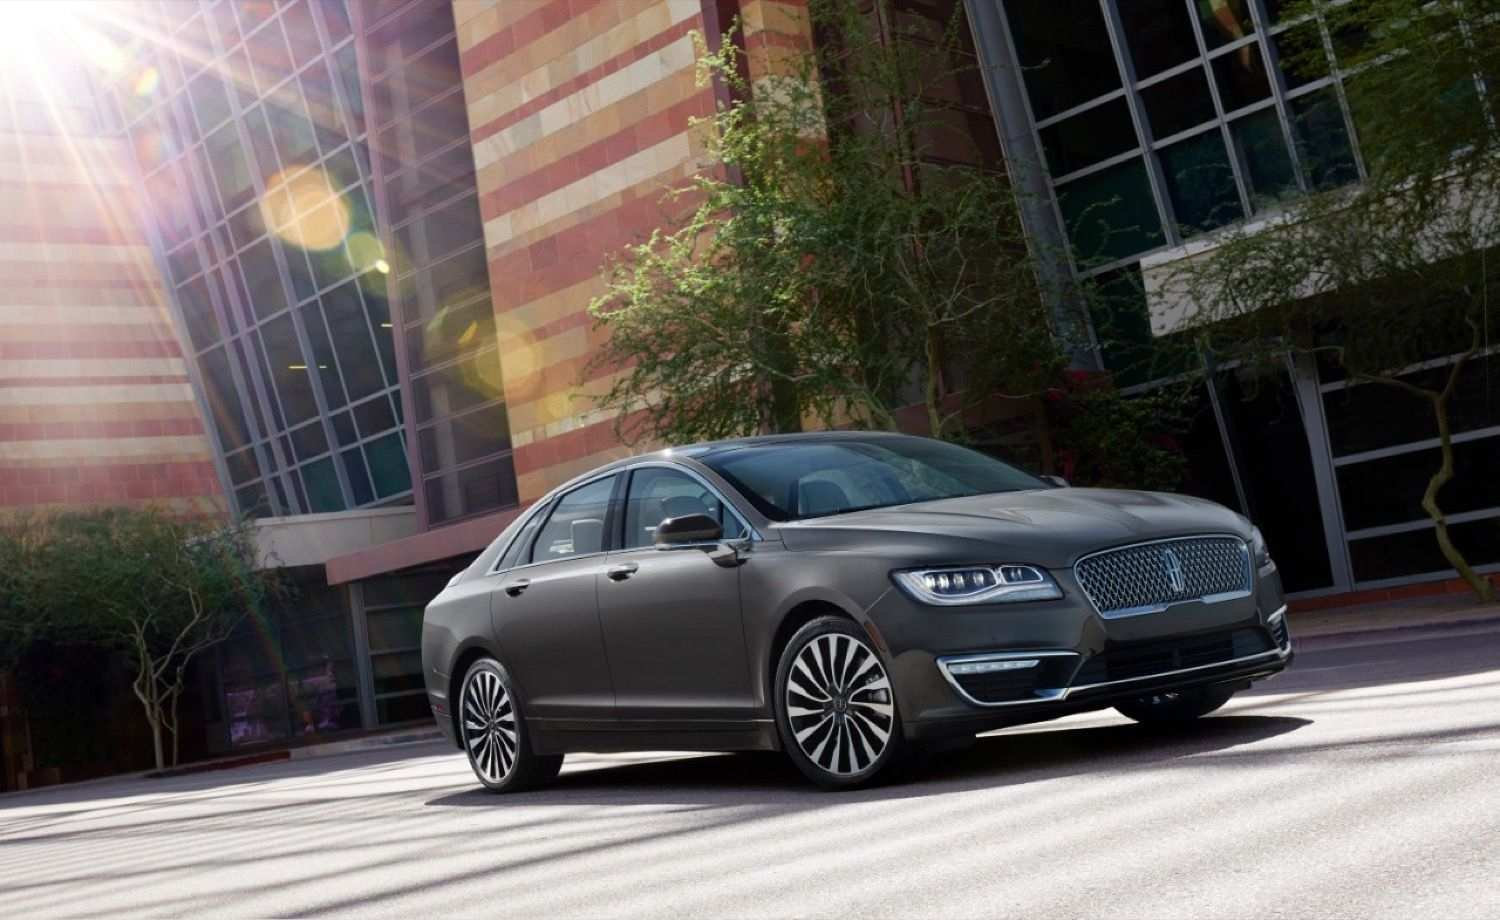 60 Best Review 2020 Lincoln MKS Spy Photos Configurations with 2020 Lincoln MKS Spy Photos